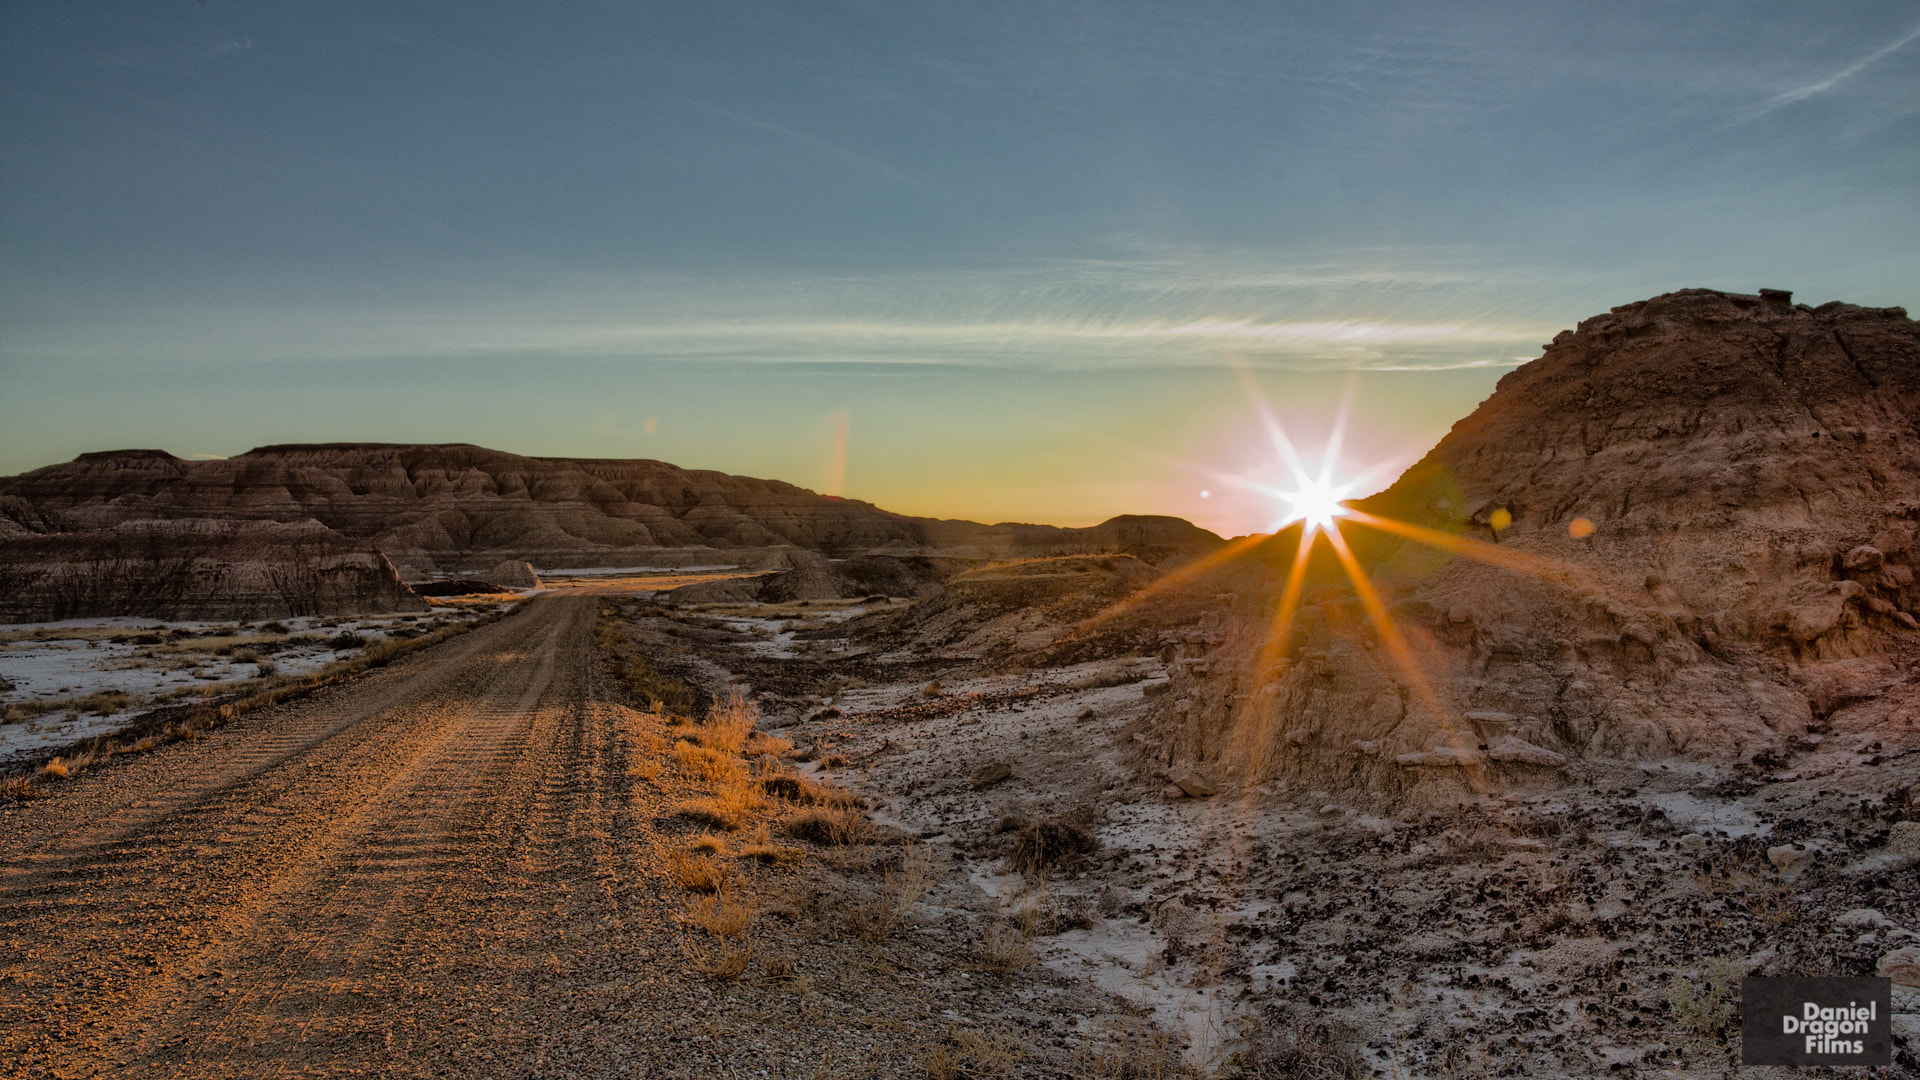 Photograph Badlands Trail at Daybreak by Daniel Lowe on 500px